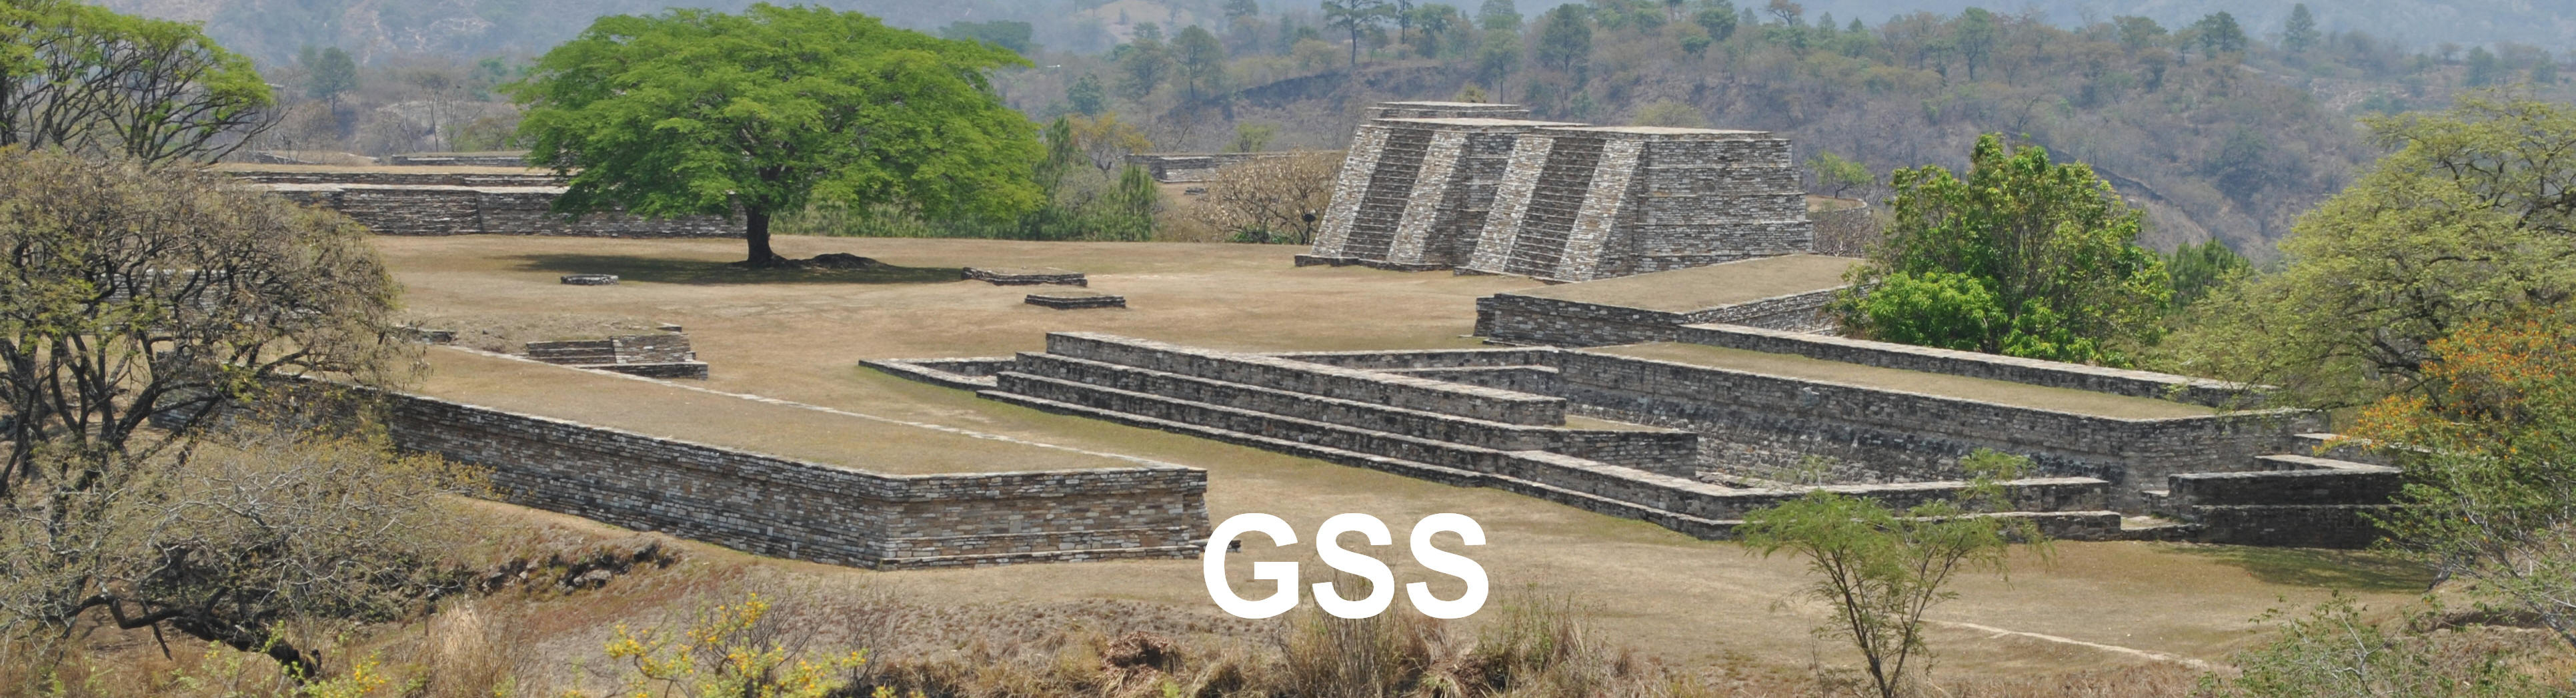 Mesoamerican cultures of the Post Classic period in Guatemala.